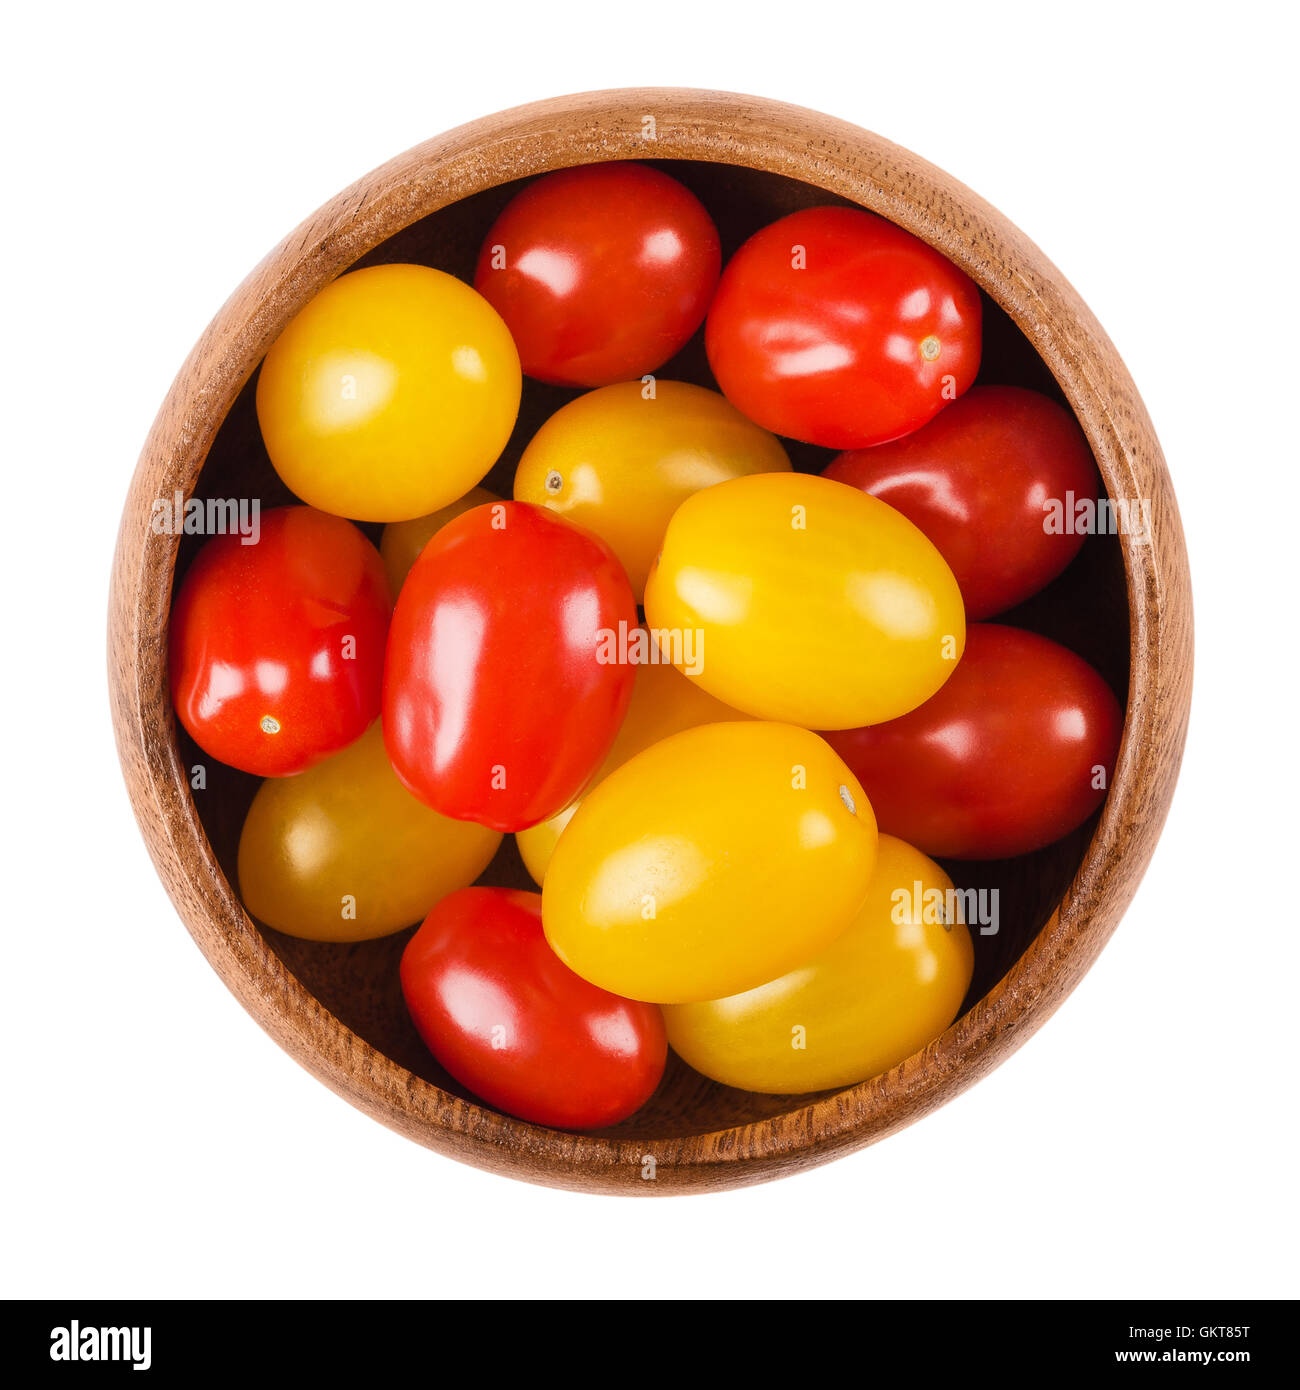 Cocktail tomatoes in a wooden bowl on white background. Yellow and red ripe fruits of Solanum lycopersicum, a berry - Stock Image